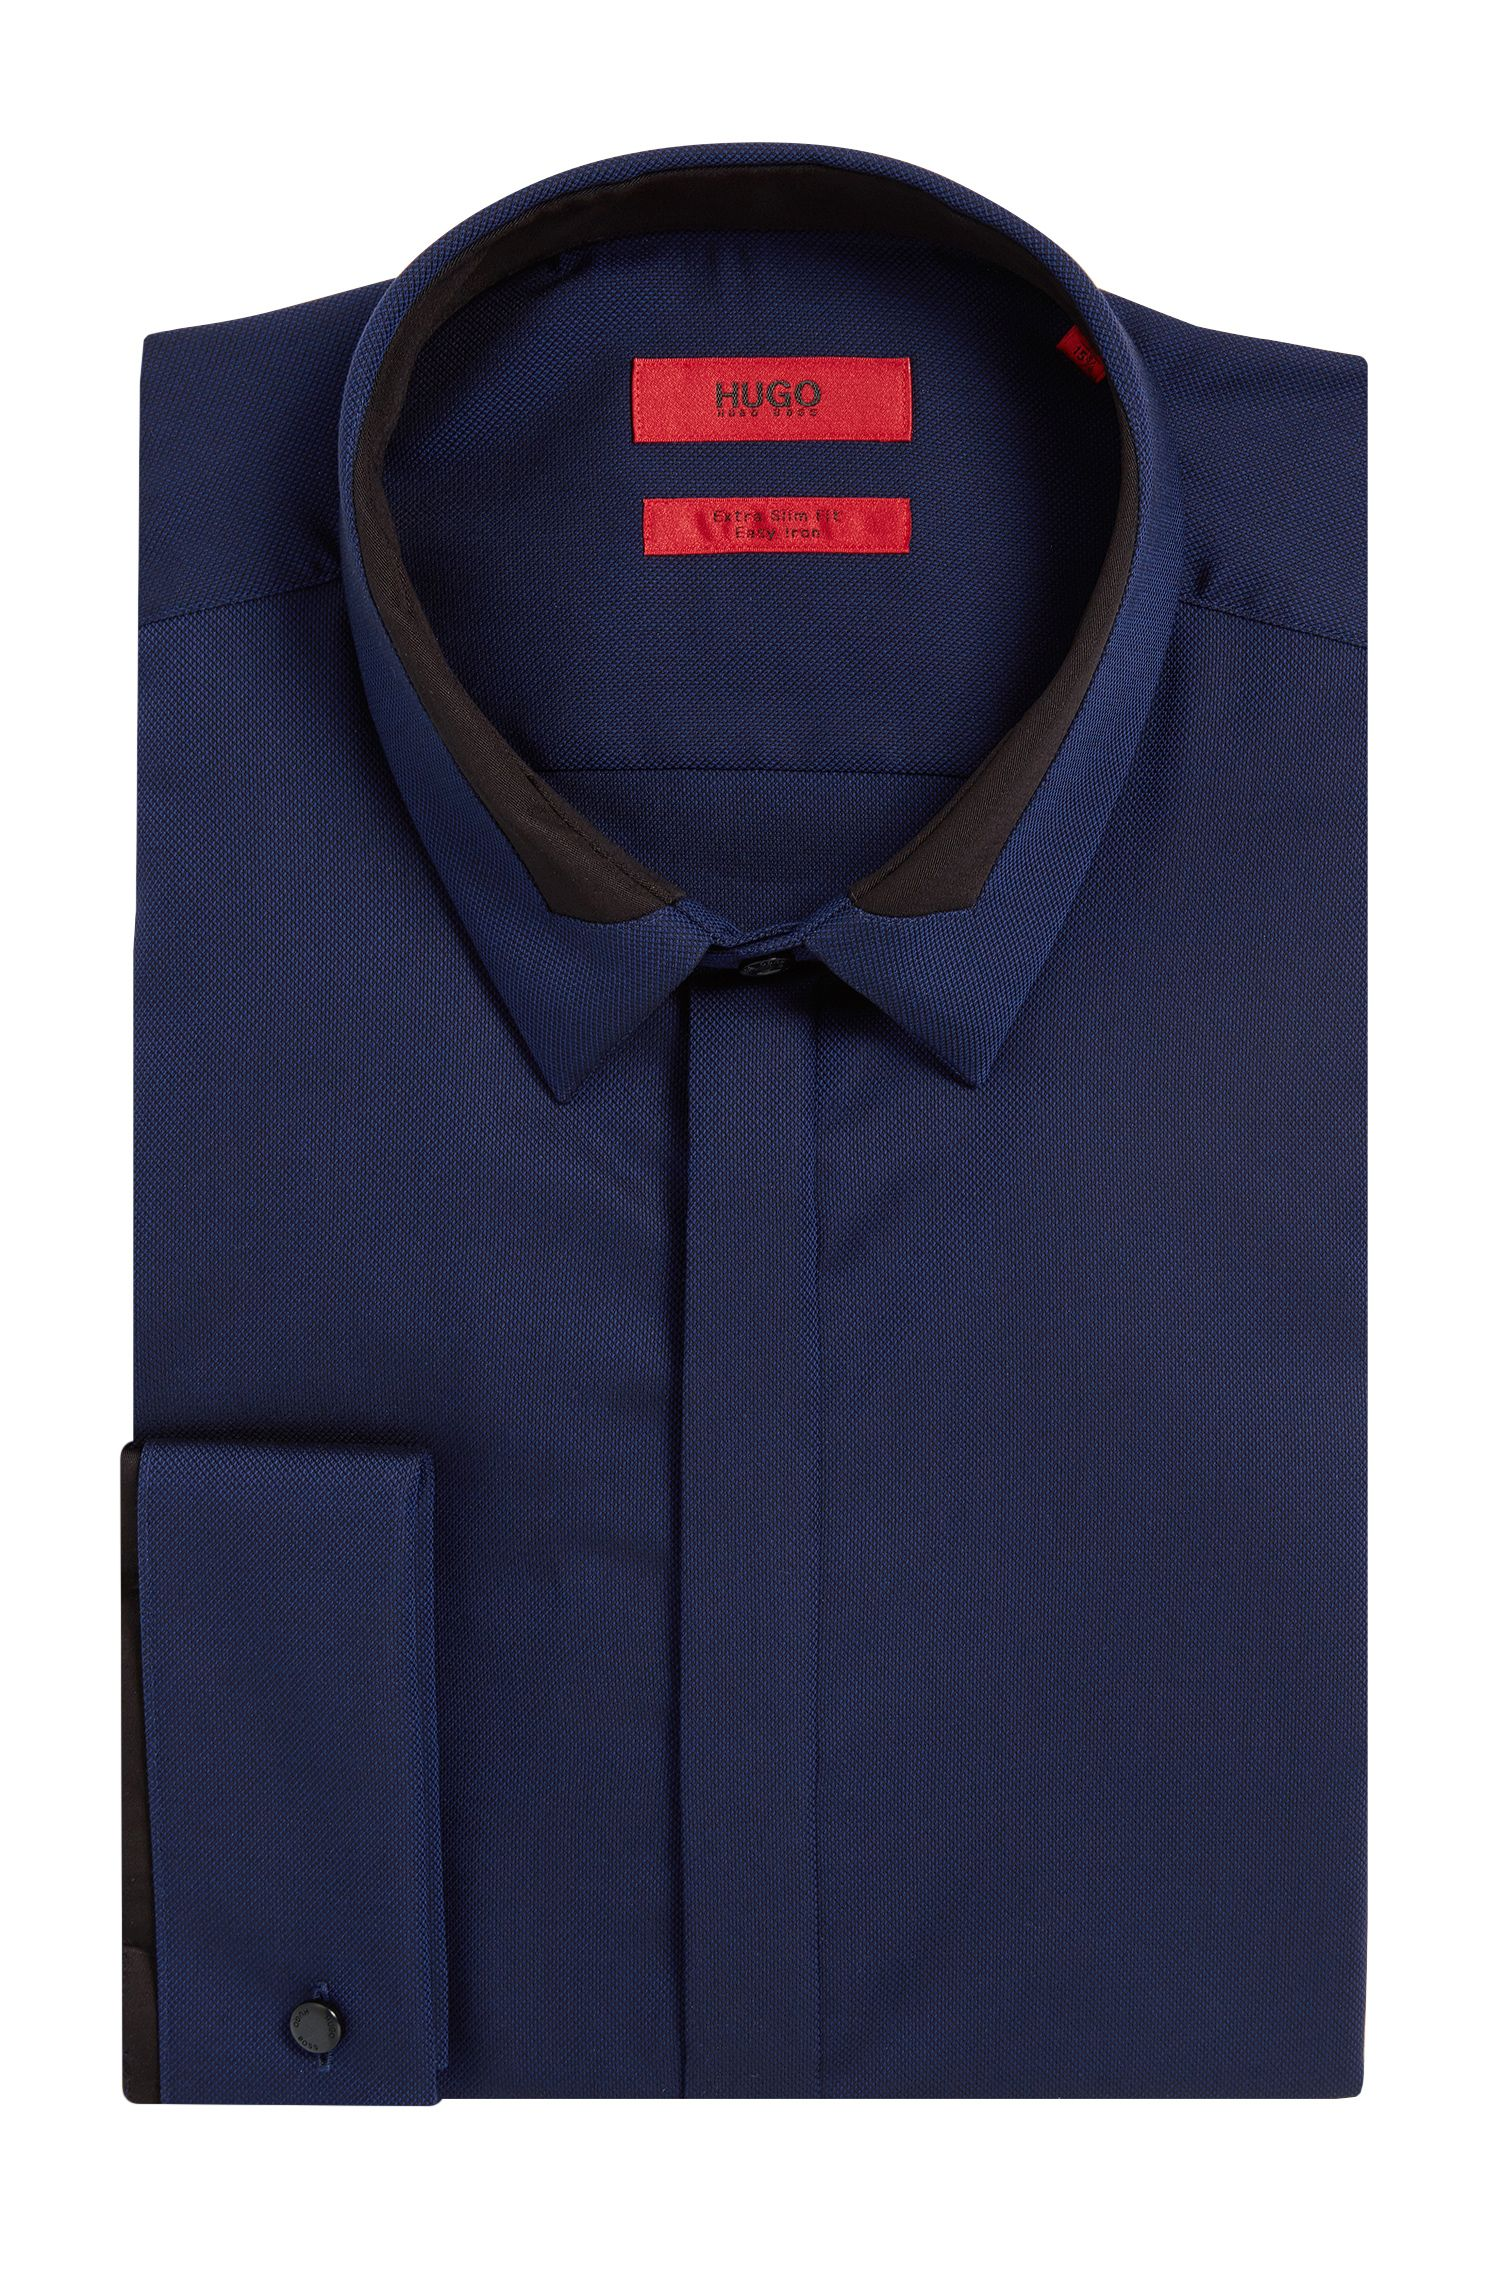 'Etris' | Extra Slim Fit, Cotton Royal Oxford French Cuff Dress Shirt